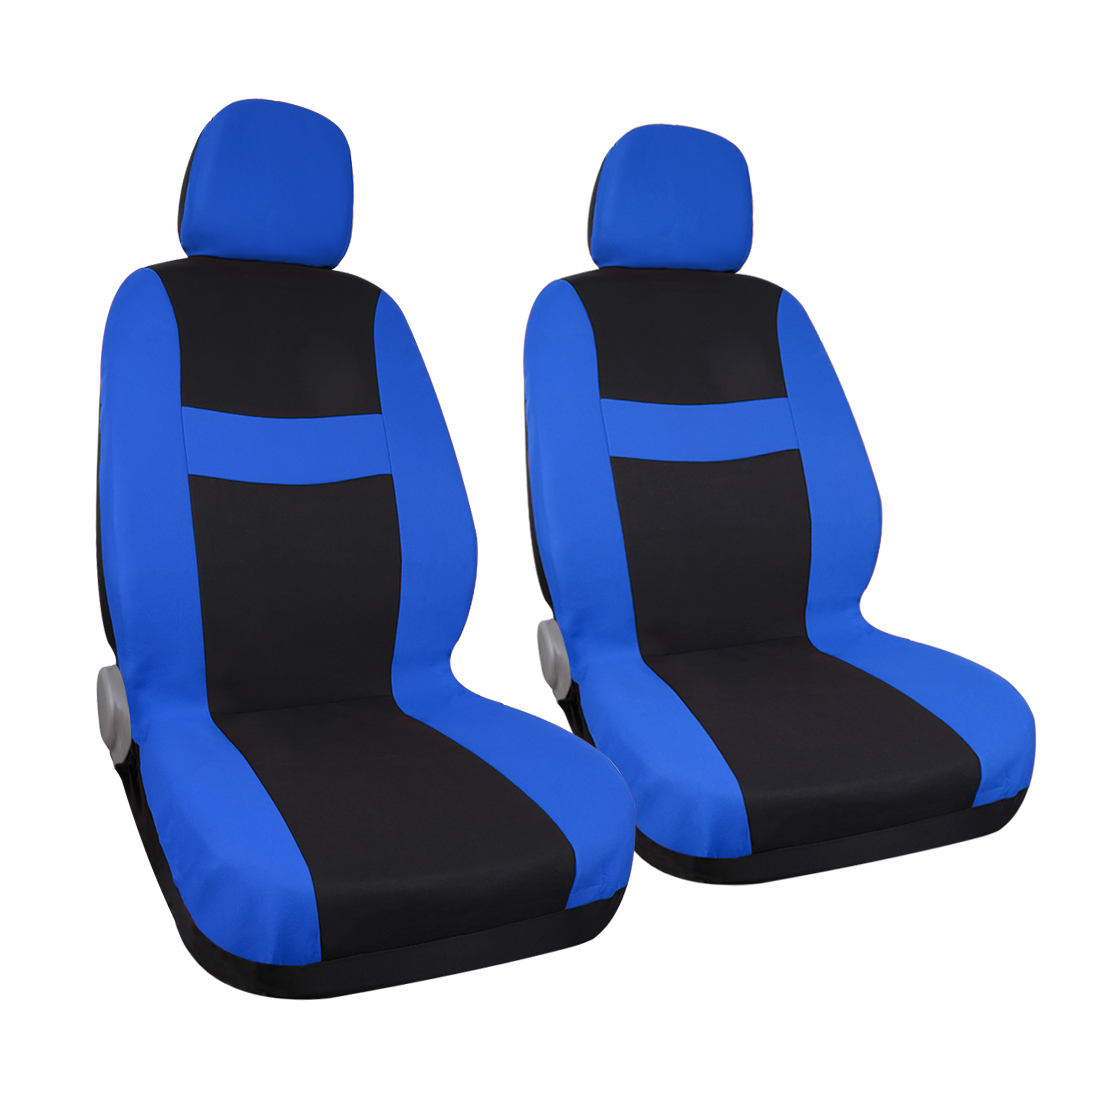 Blue Black Car Seat Covers With Headrest Fit For Auto